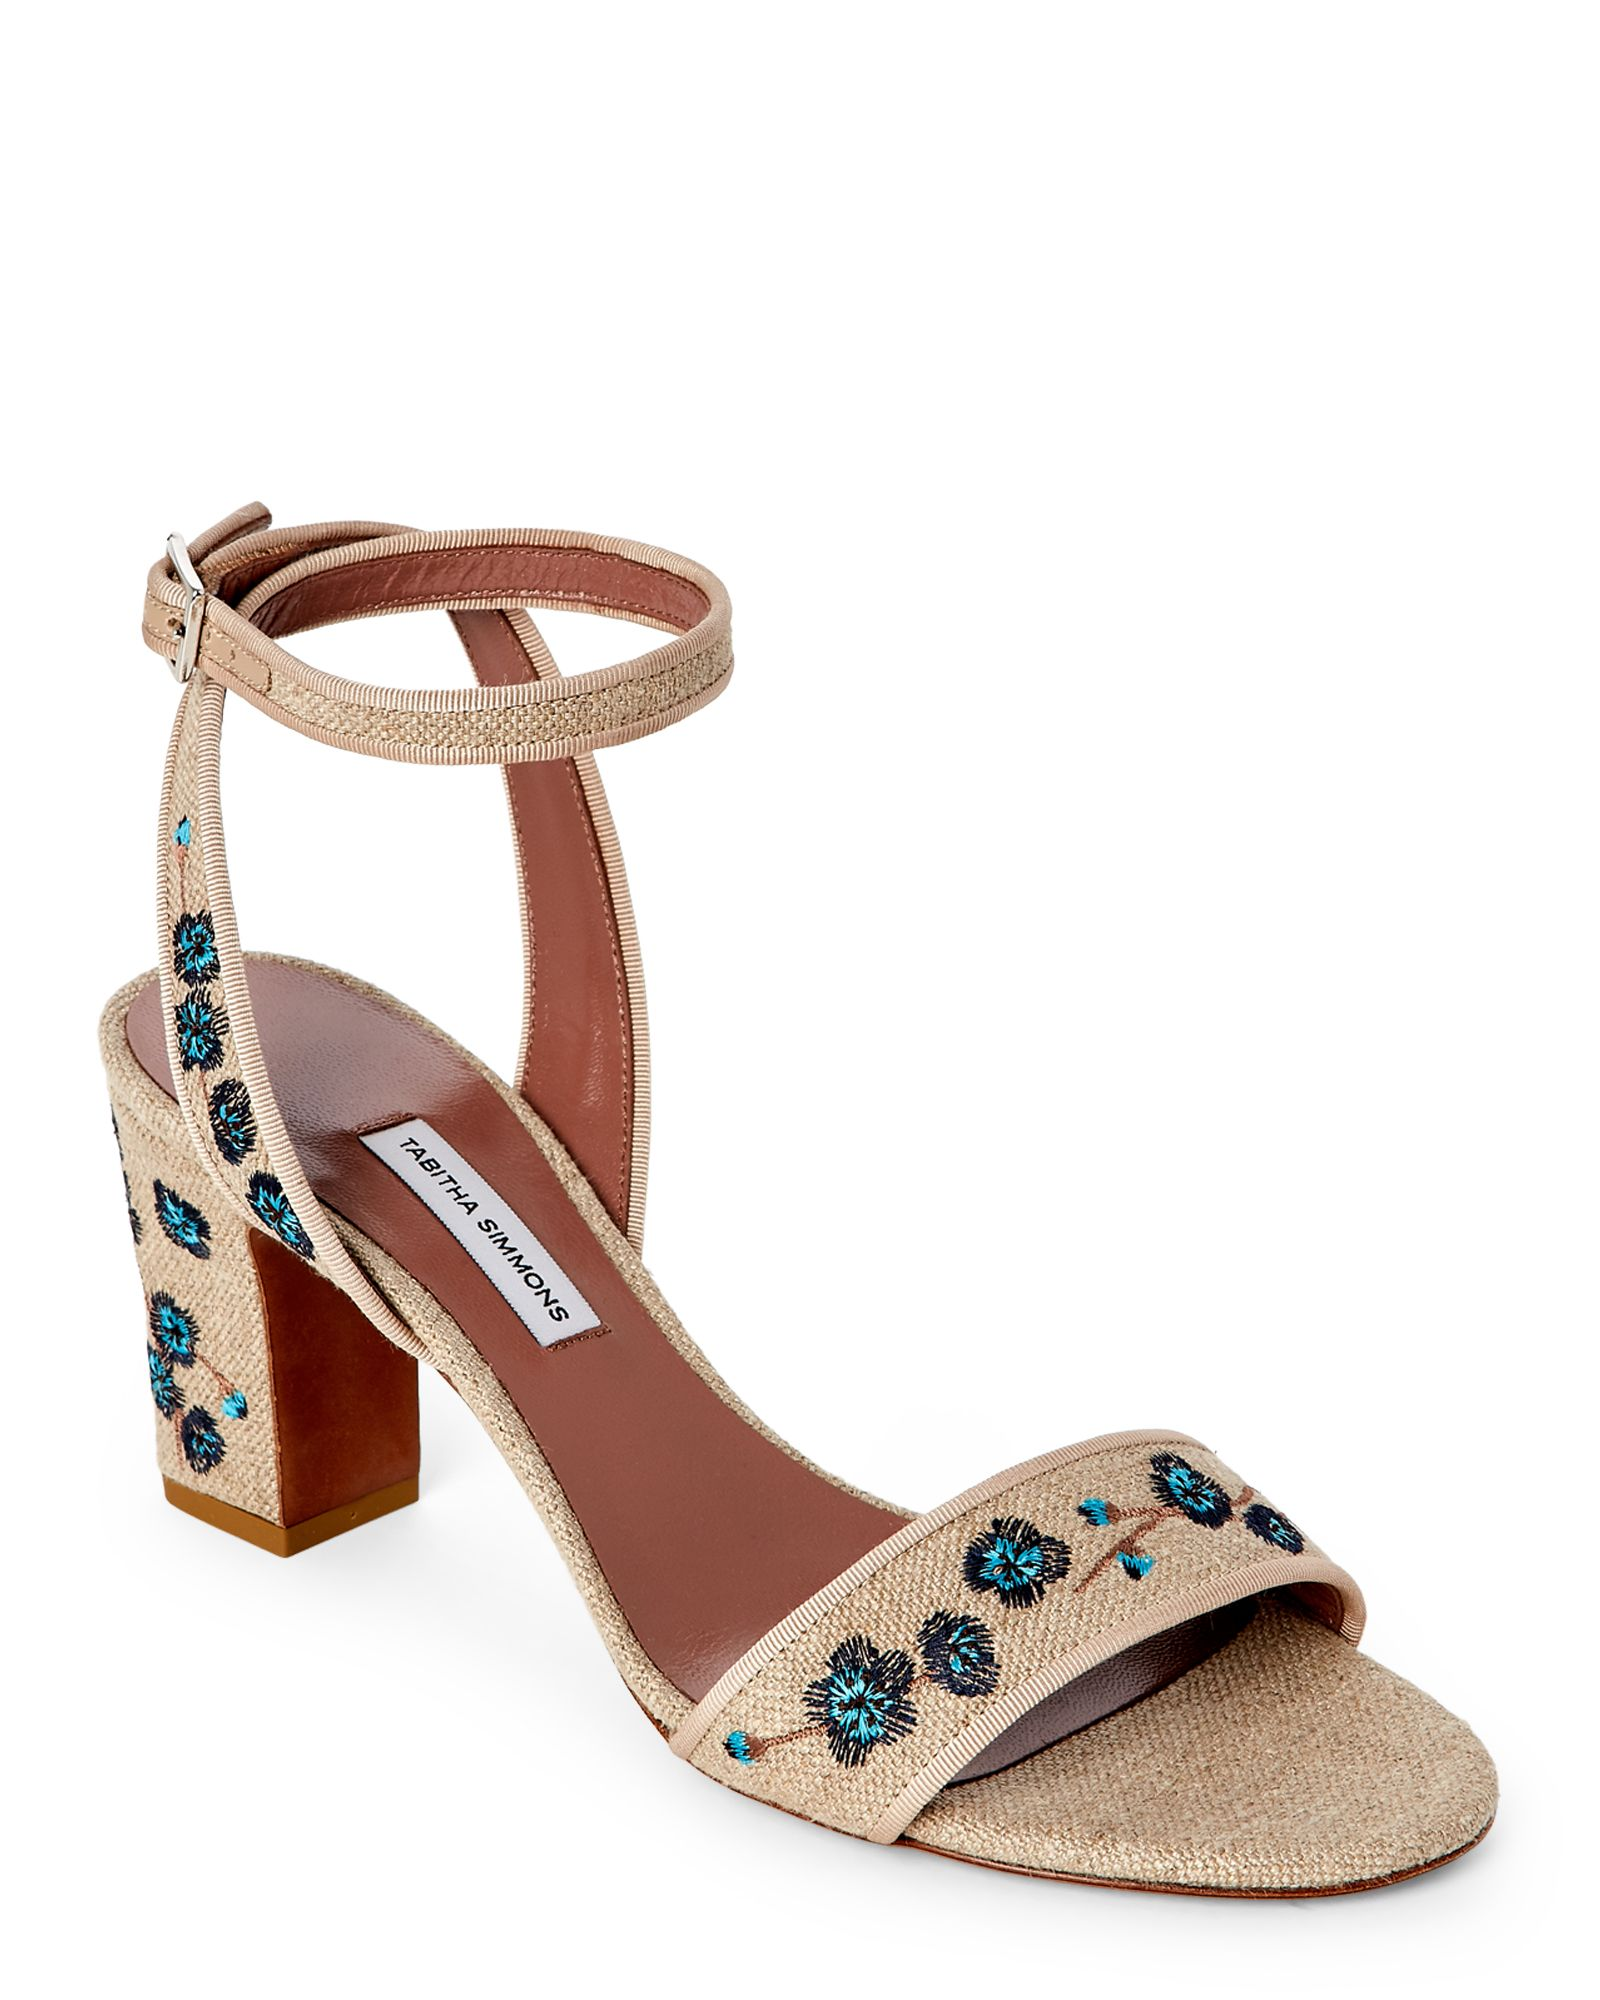 91727334970 Tabitha Simmons Natural   Marine Floral-Embroidery Block Heel Sandals